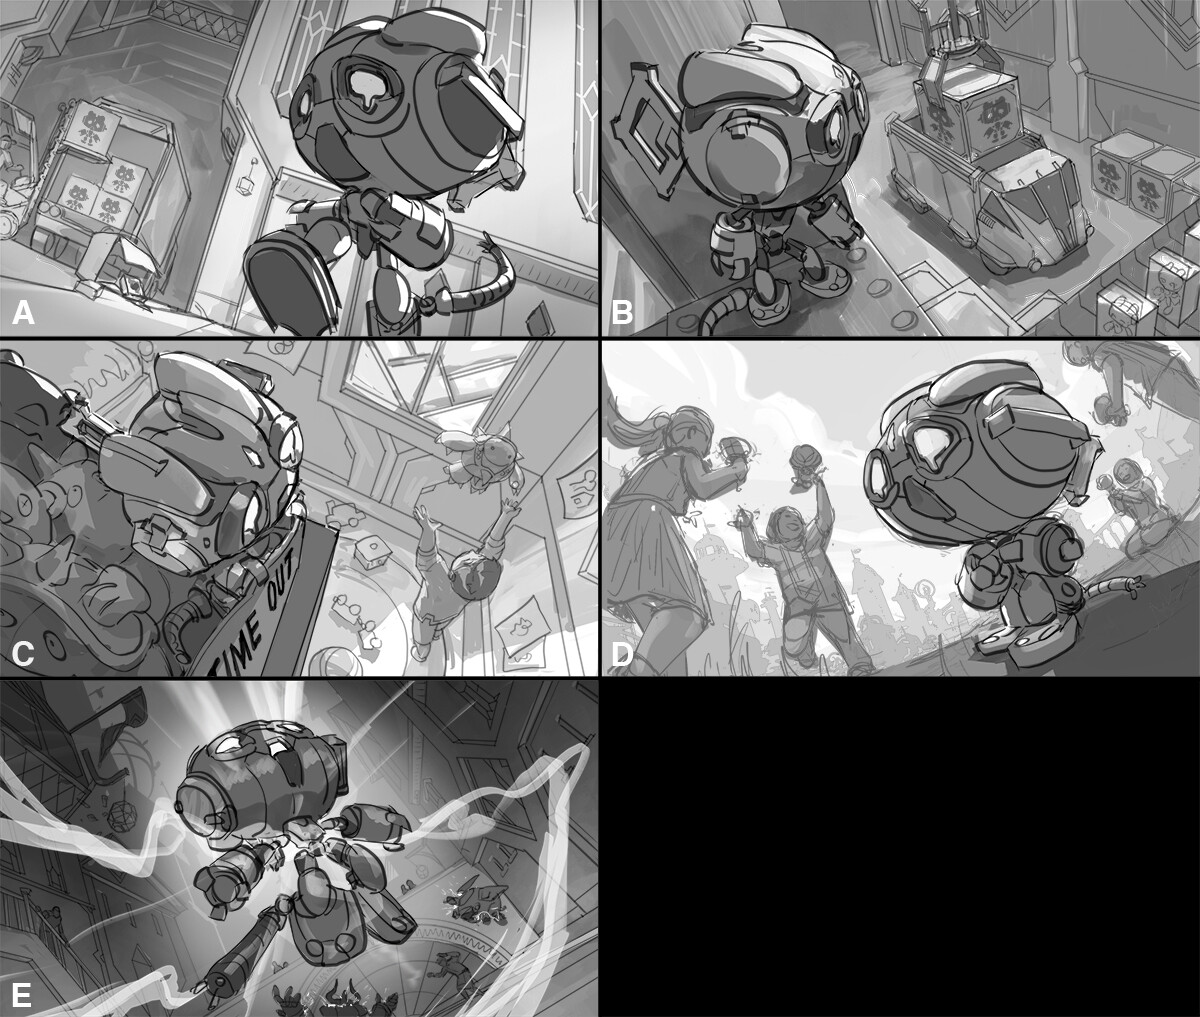 Amumu is a Hextech Toy so the initial idea explorations by Riot were based around that.